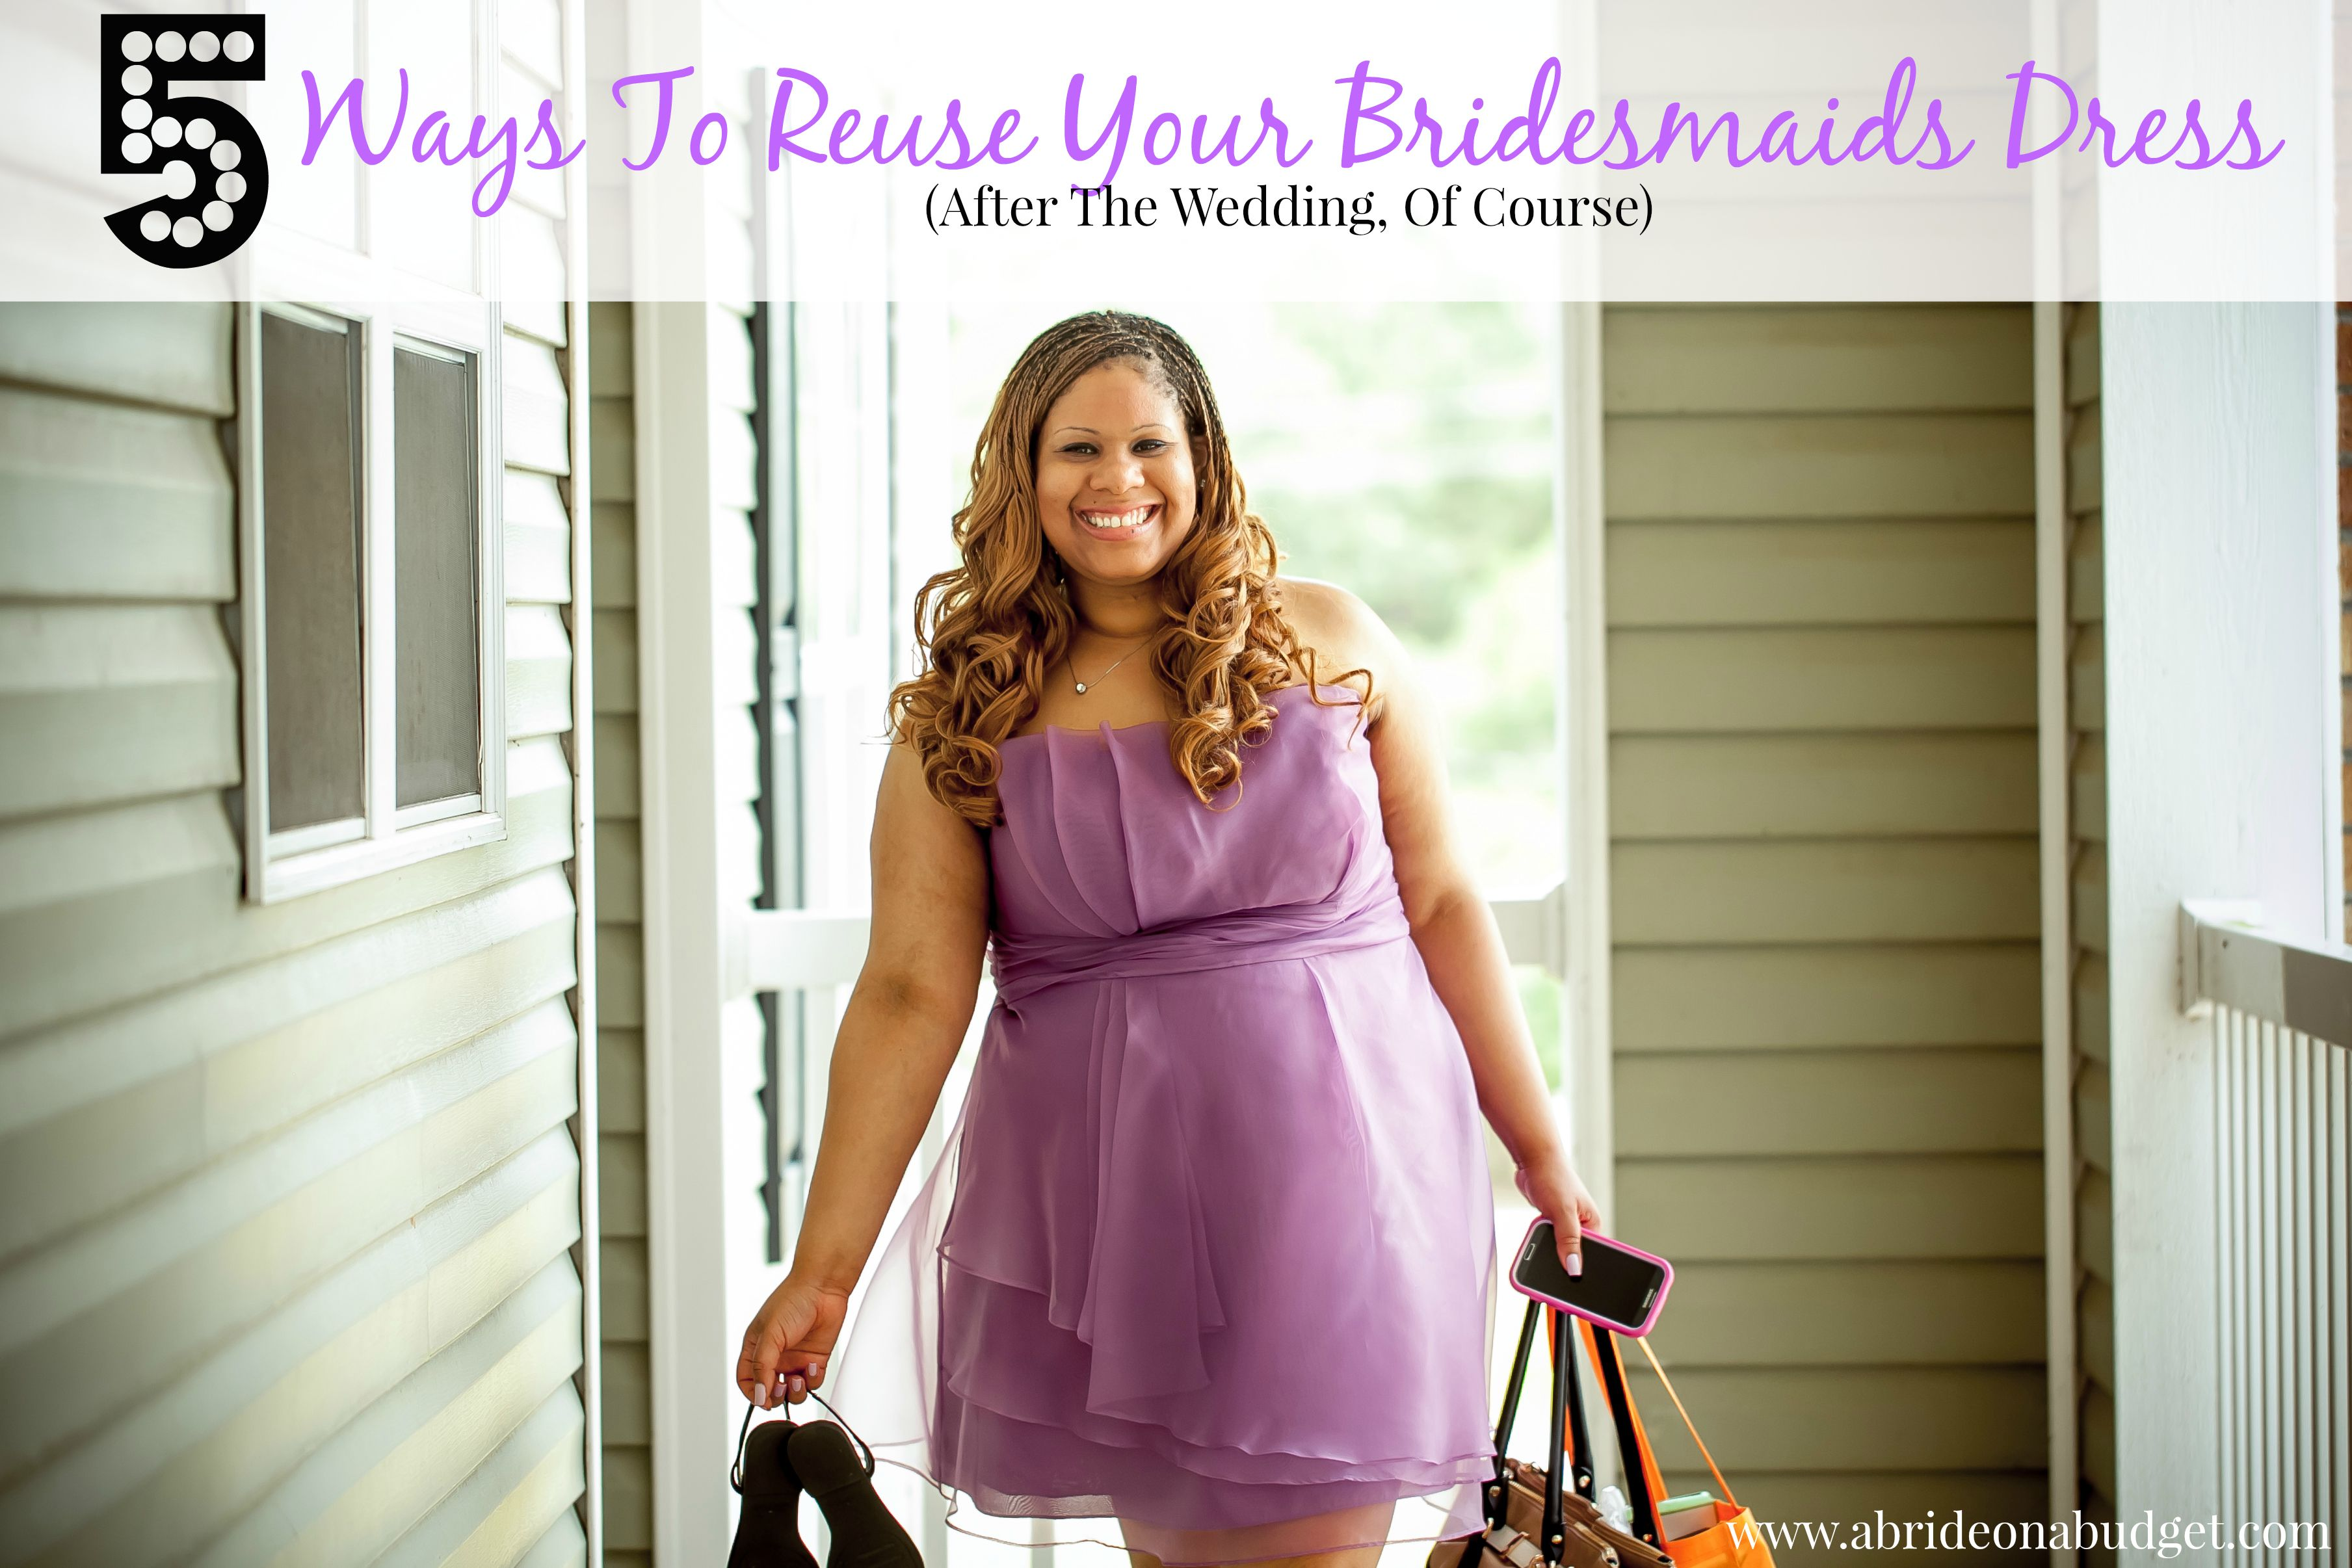 Five ways to reuse your bridesmaids dress after the wedding of